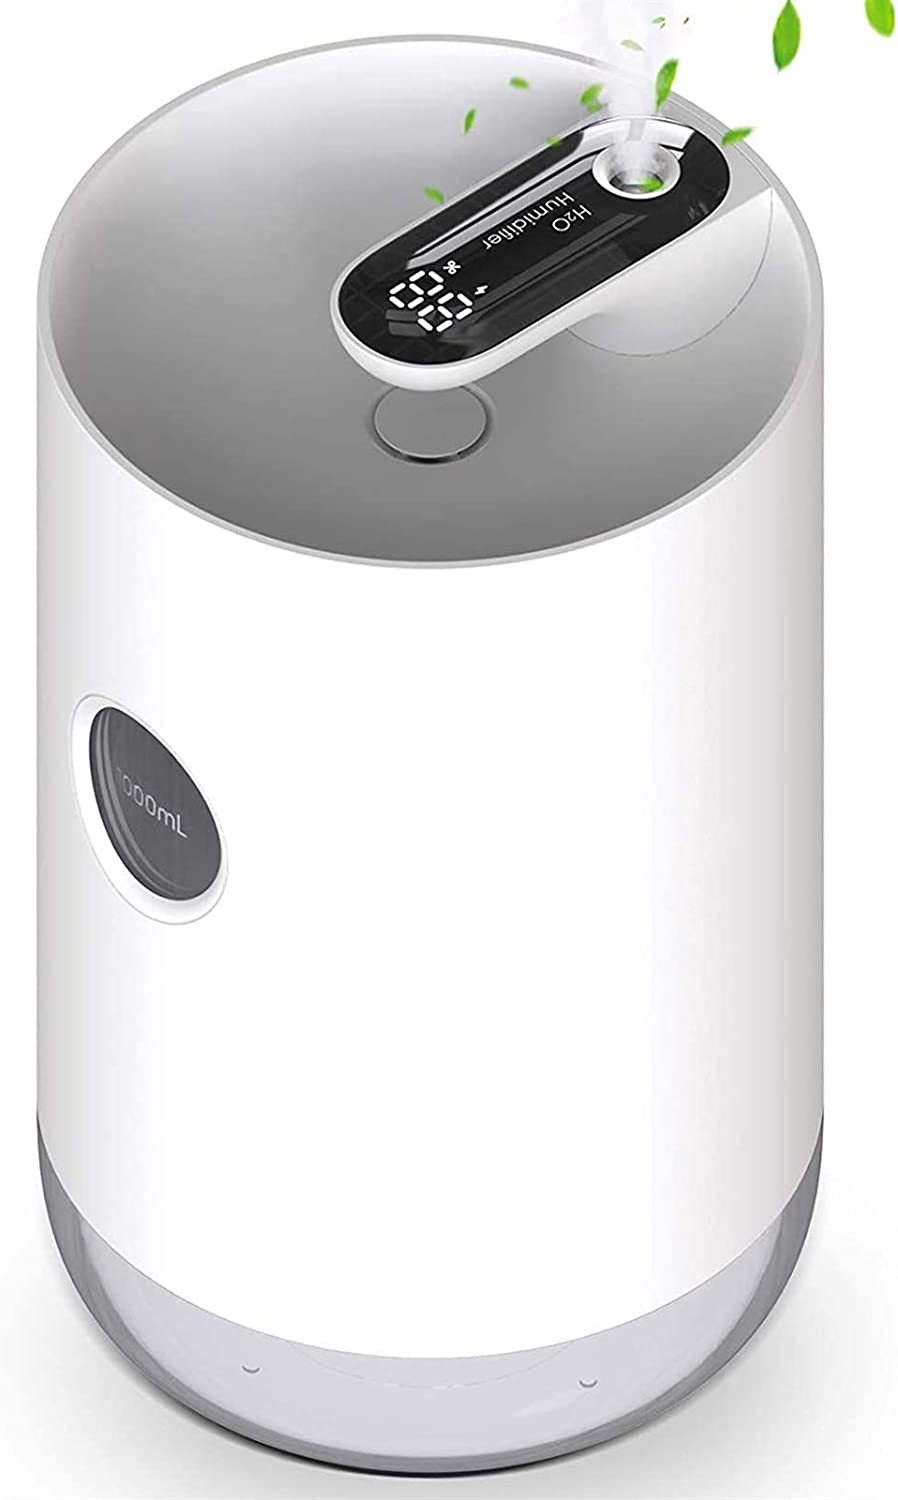 WFSH Air humidifier 1000 ml US Max 75% Free shipping / New OFF air ultrasonic Bedroom